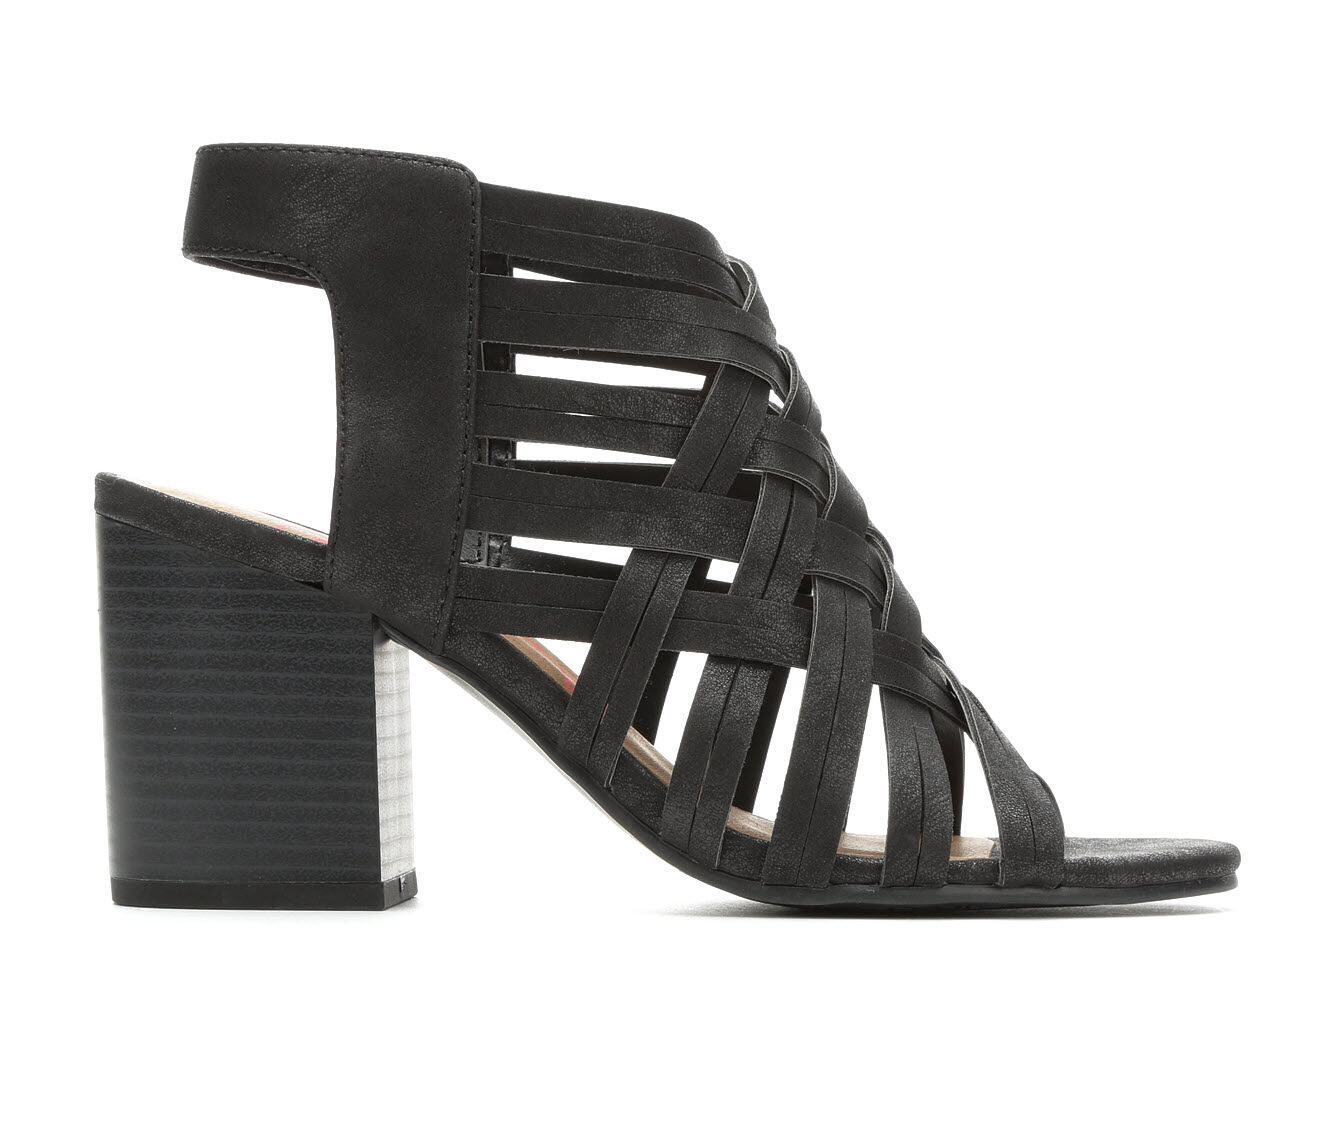 100% quality materials Women's Jellypop Aniyah Strappy Heeled Sandals Black